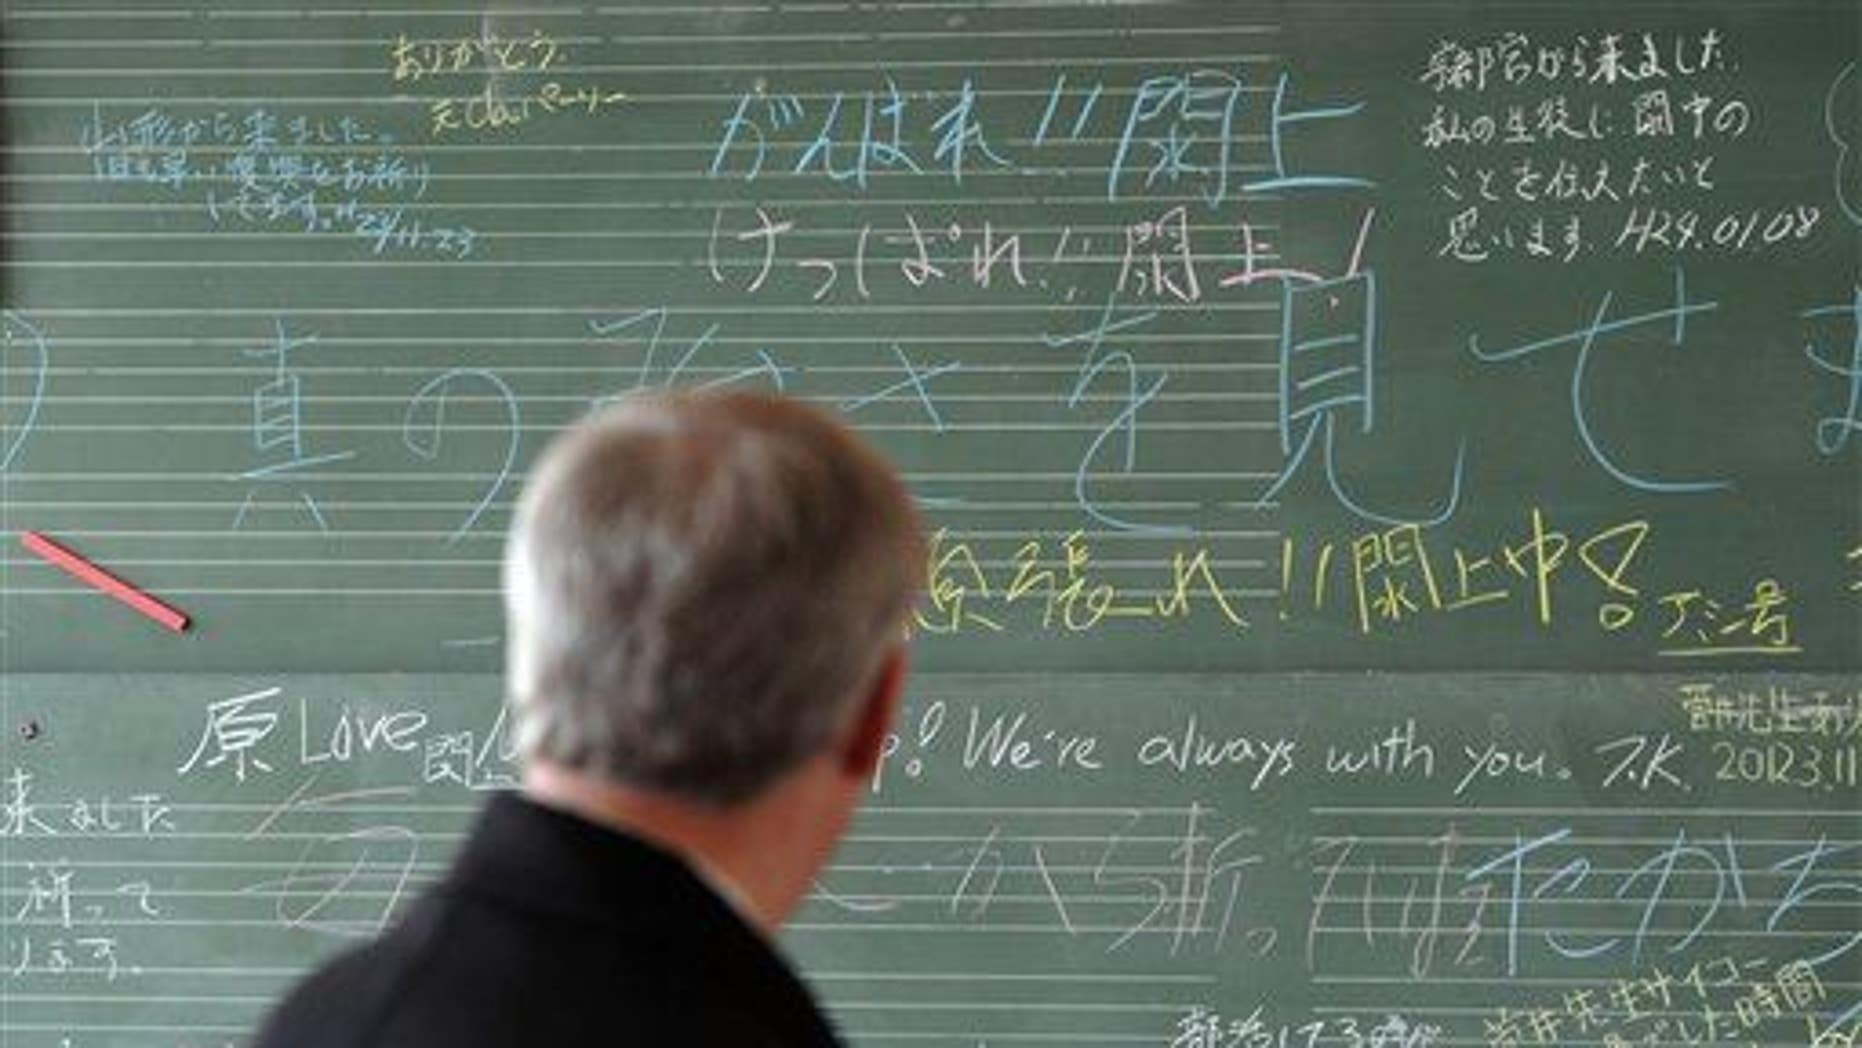 Prime Minister Stephen Harper looks at a chalk board filled with well wishes at the Yuriage Junior High School as he visits the coastal region of Japan, near Sendai, on Monday, March 26, 2012.